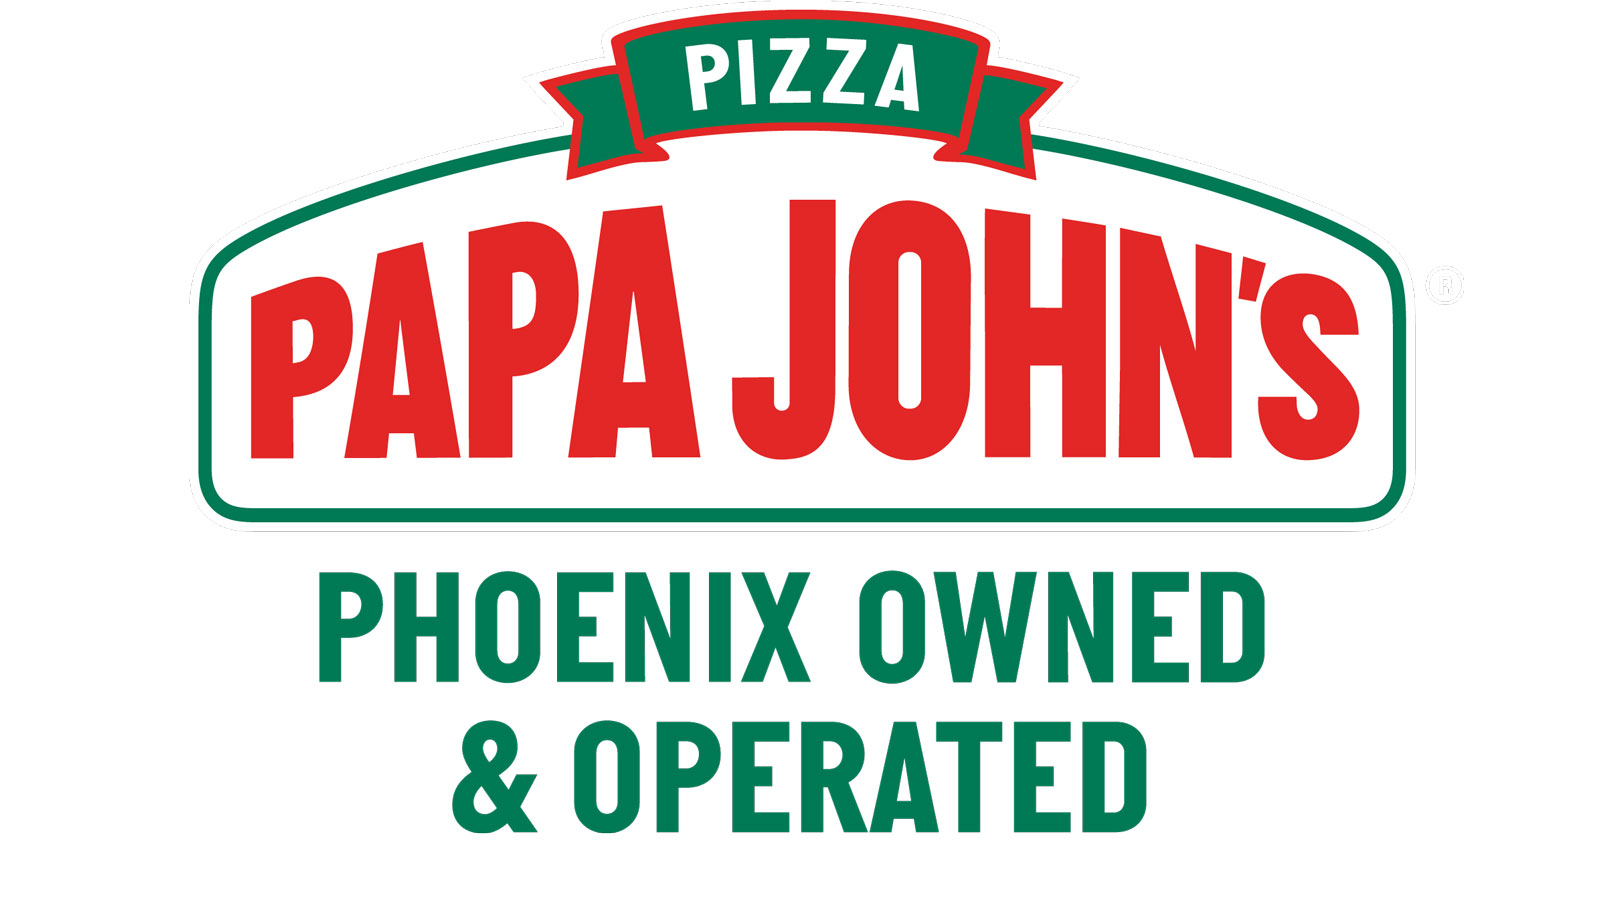 Papa John's Maximum Effort of the Week Award